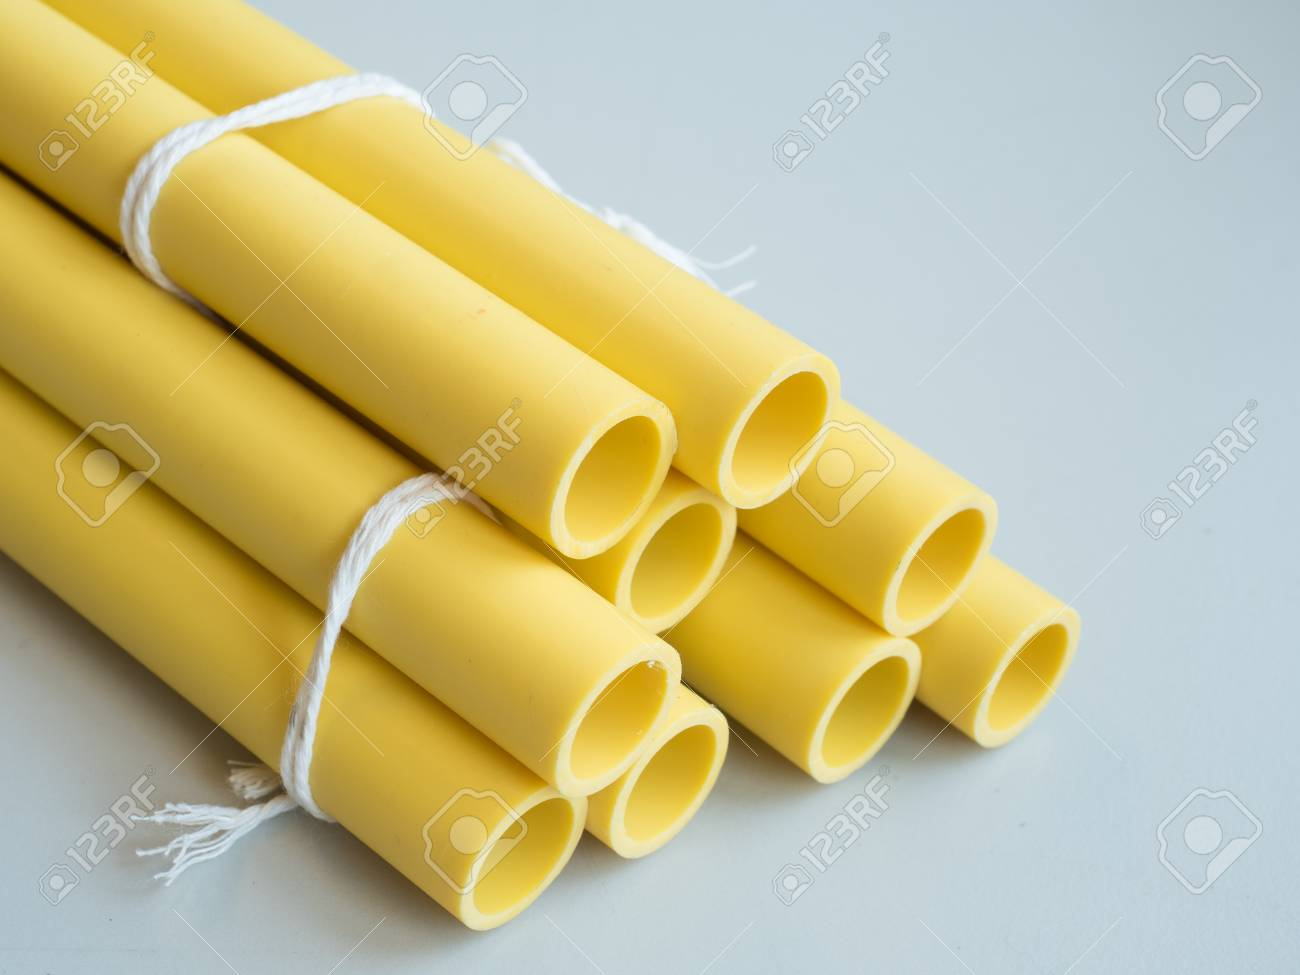 Pvc, Polyvinyle Chloride Pipe , For Using In Wiring Electrical ...